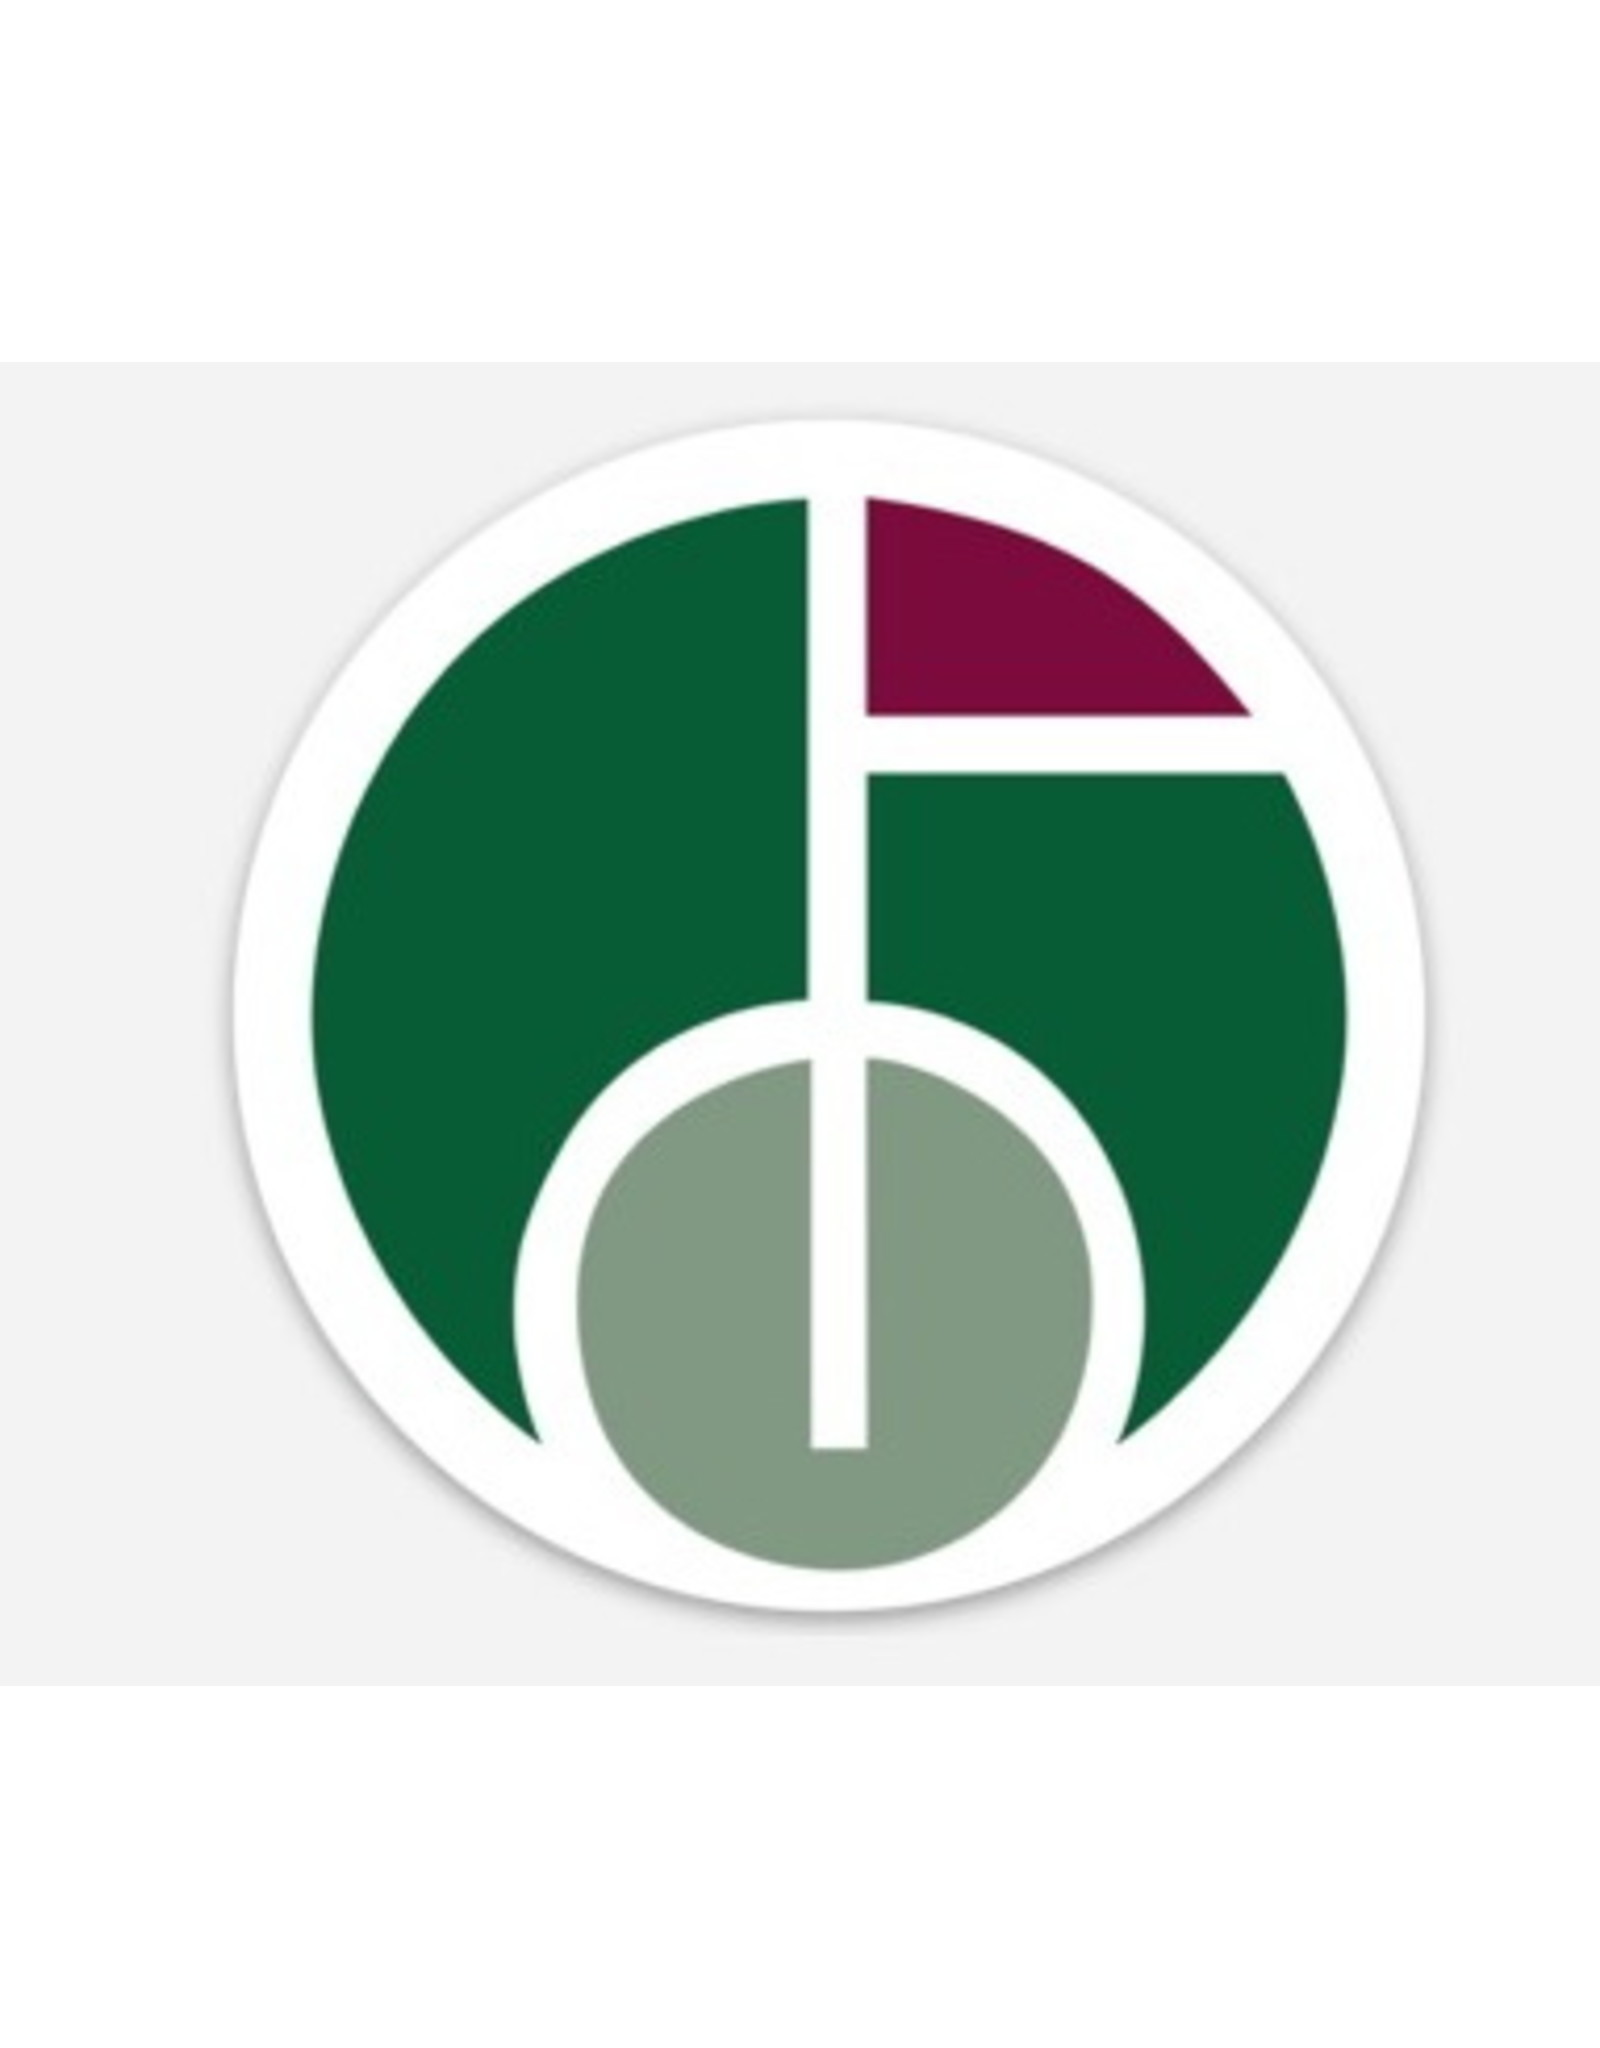 GCSAA Magnet - Icon Only